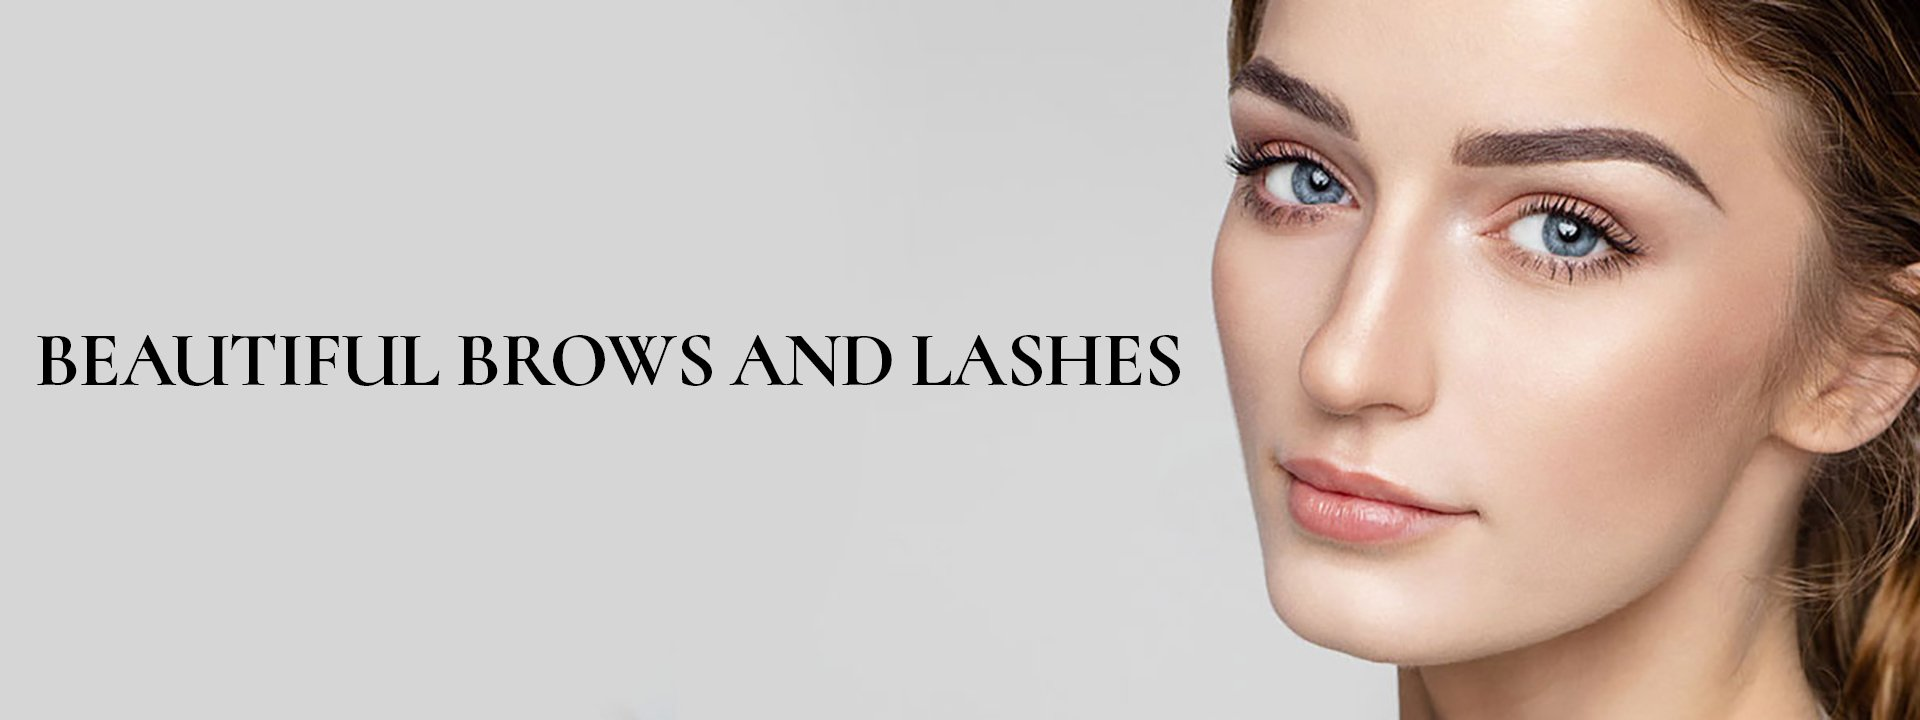 Best Brows Lashes Services Winchester Beauty Salon